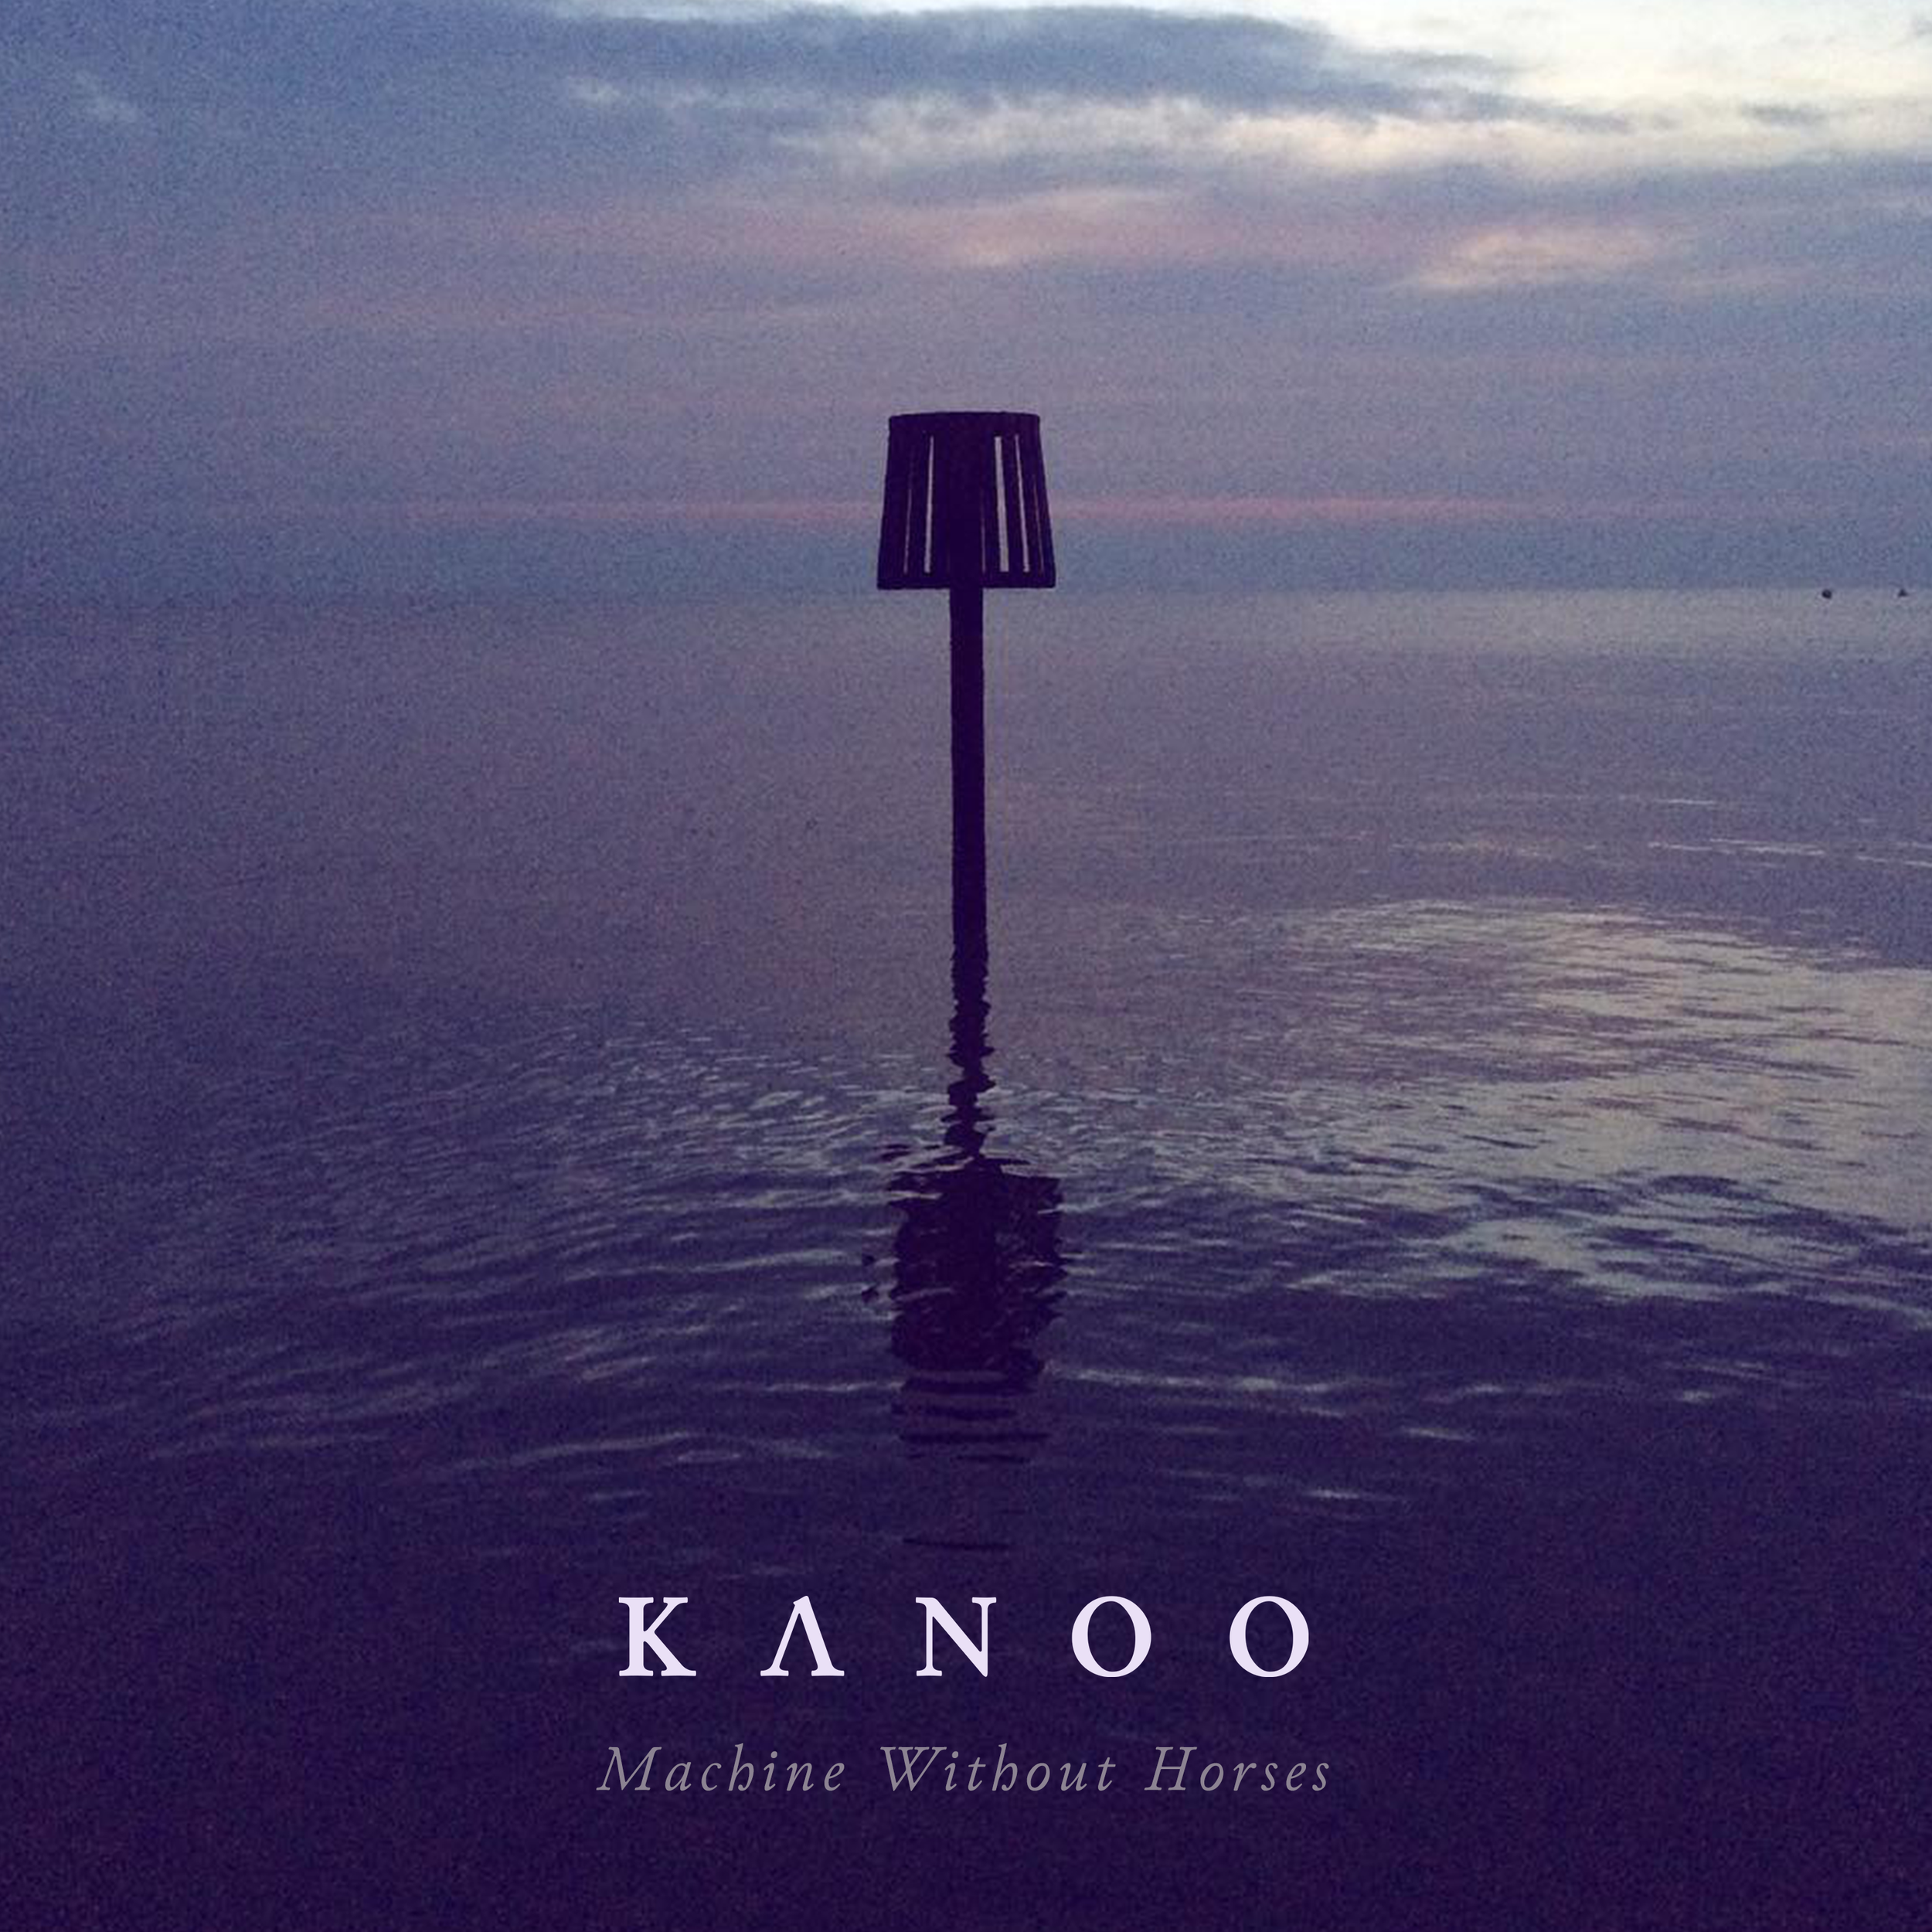 Machine Without Horses - Debut single by Kanoo. Out now.